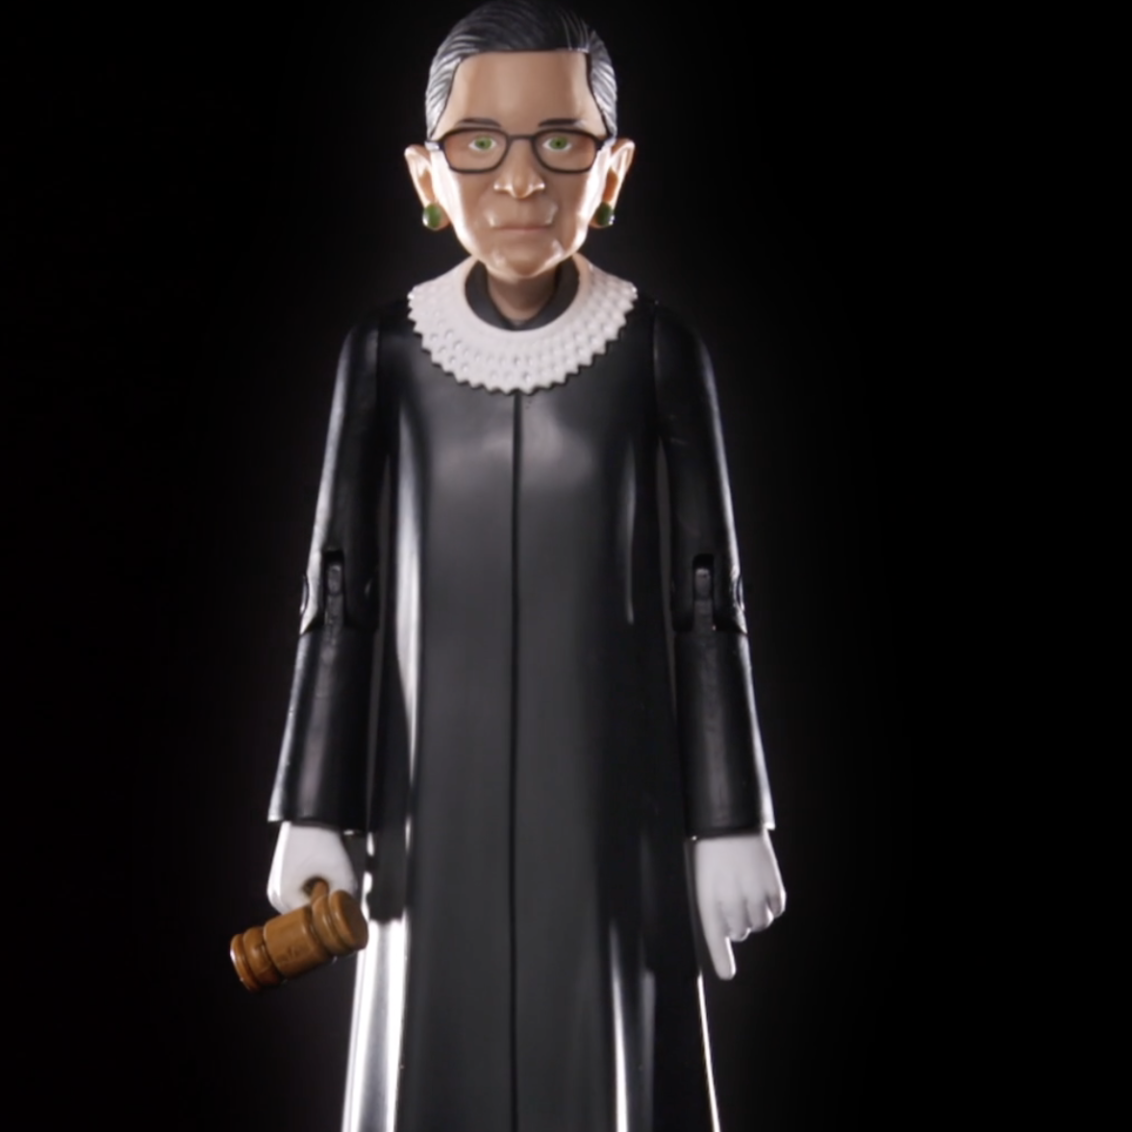 Ruth Bader Ginsburg action figures will ship this fall